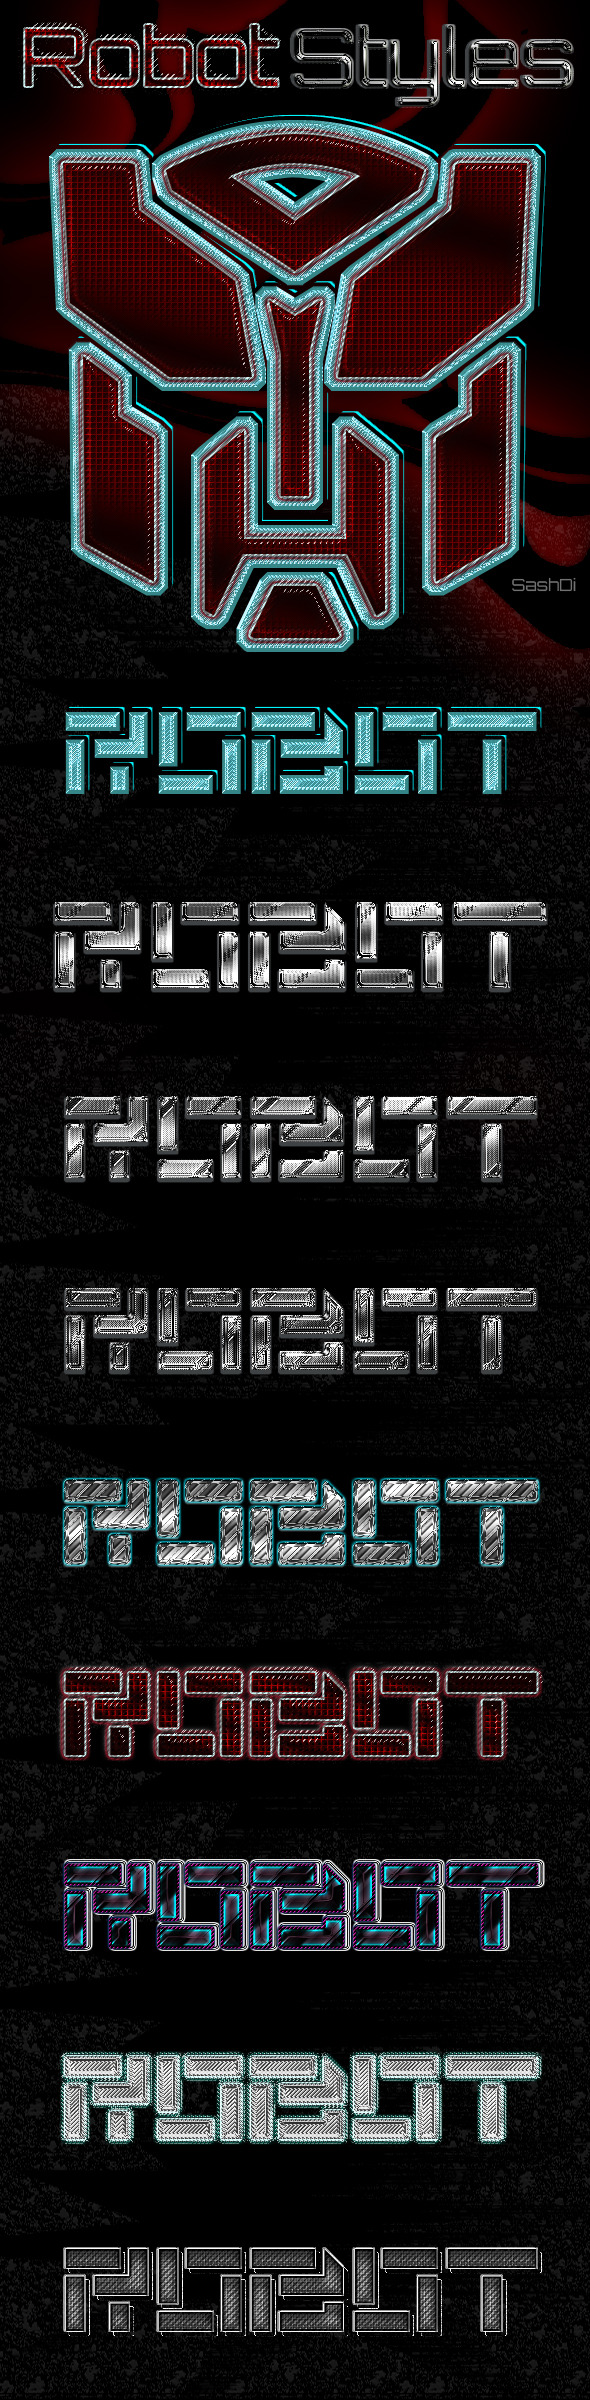 Robot Styles - Text Effects Styles